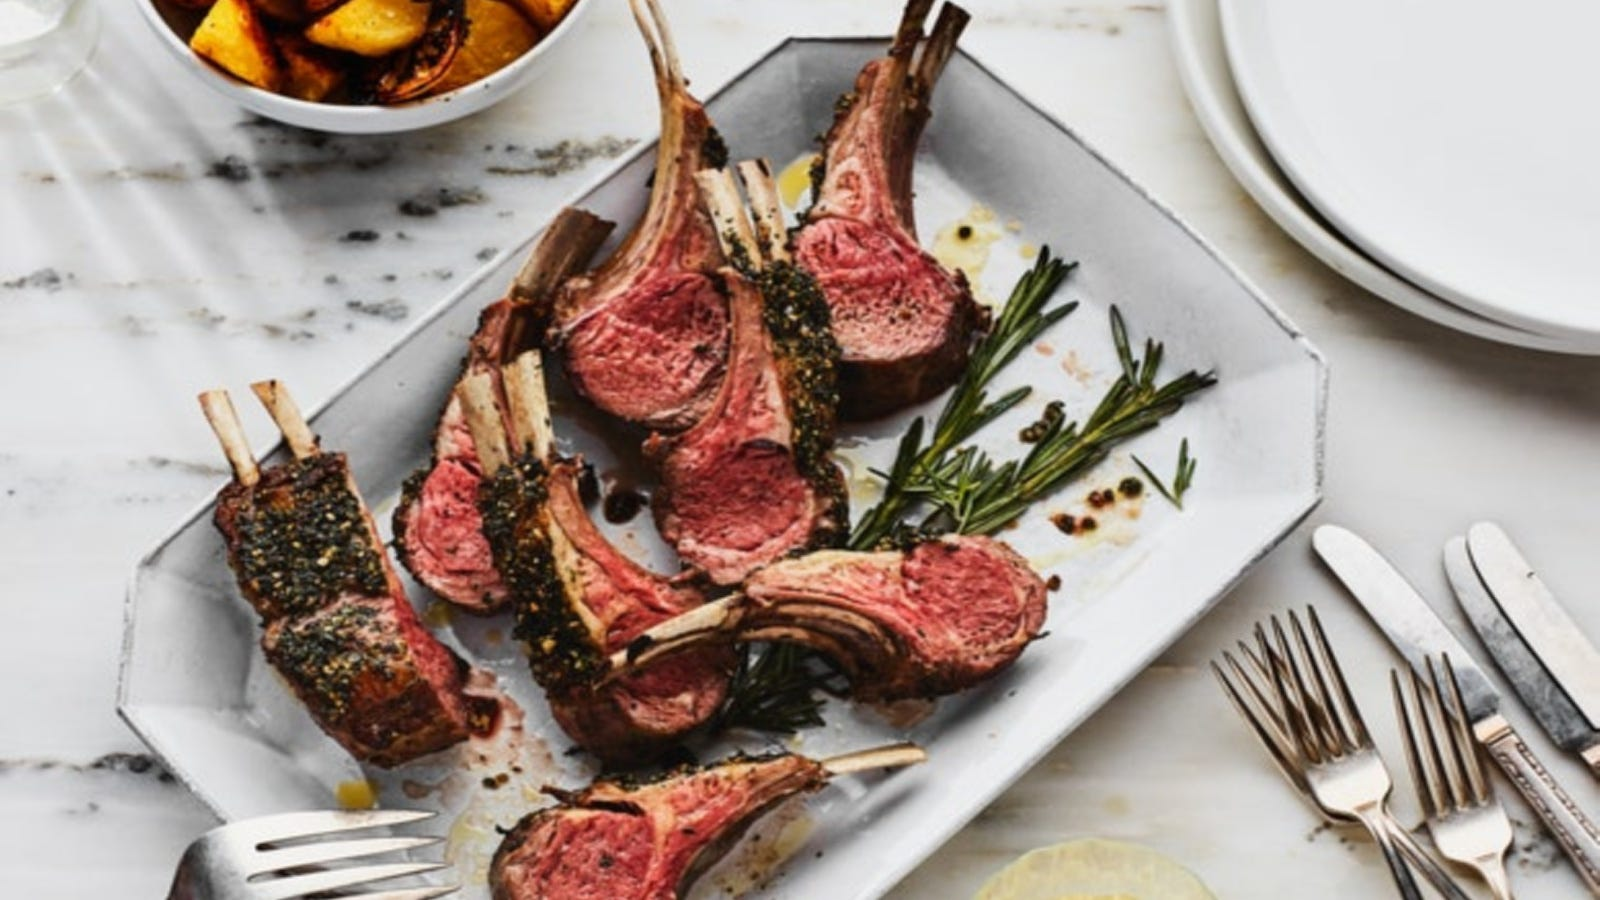 A lovely rectangular plate lined with silver accents serving a rack of medium rare lamb chops freshly cut from a rack of lamb garnished with rosemary.